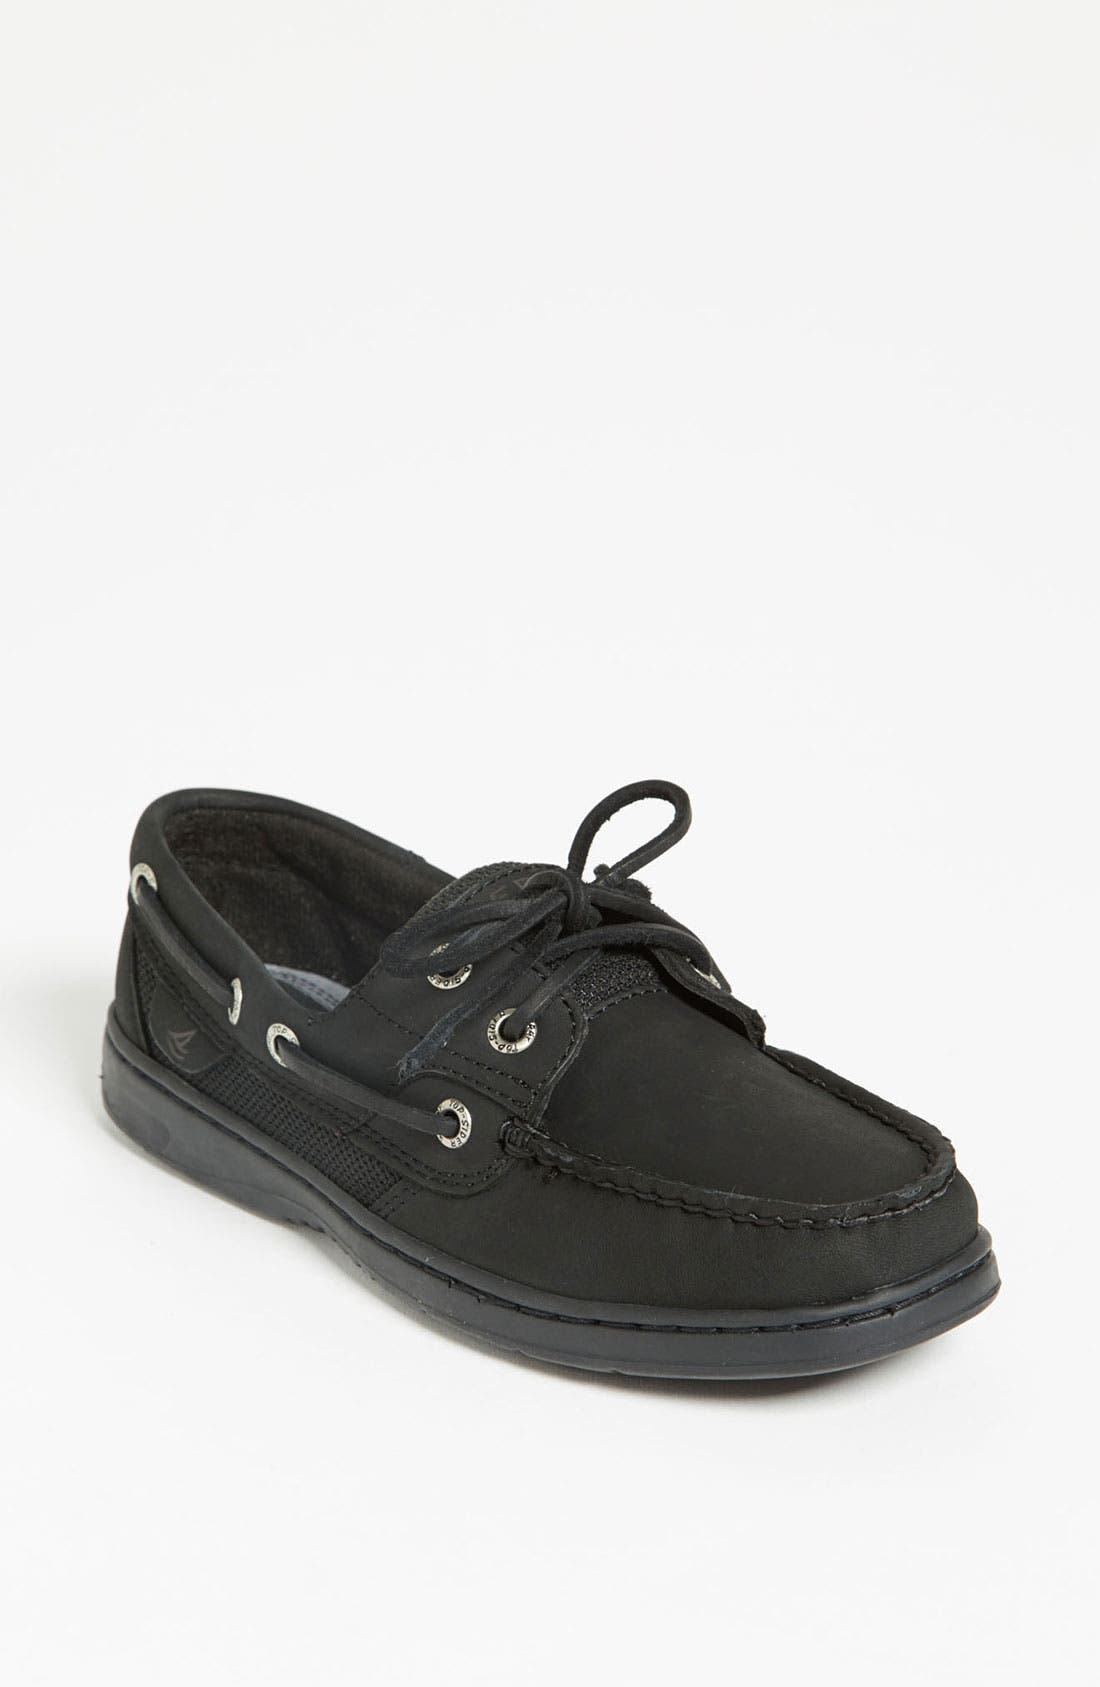 Top-Sider<sup>®</sup> 'Bluefish 2 Eye' Boat Shoe, Main, color, 001